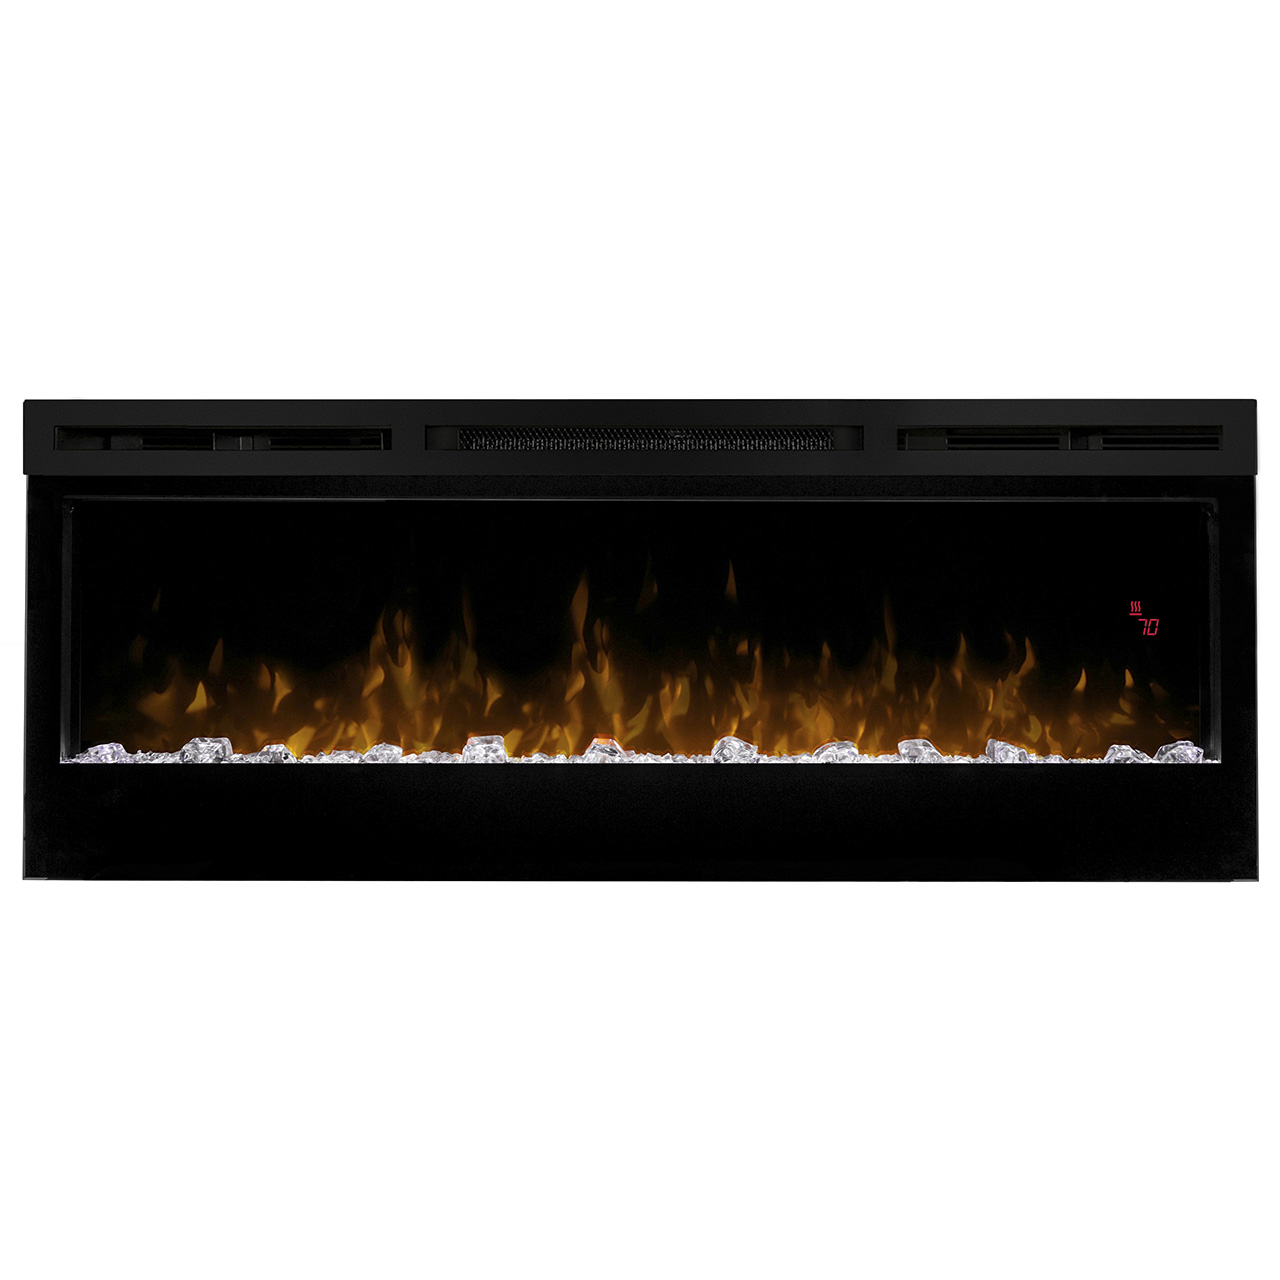 Dimplex Prism Series 50 Inch Electric Linear Fireplace